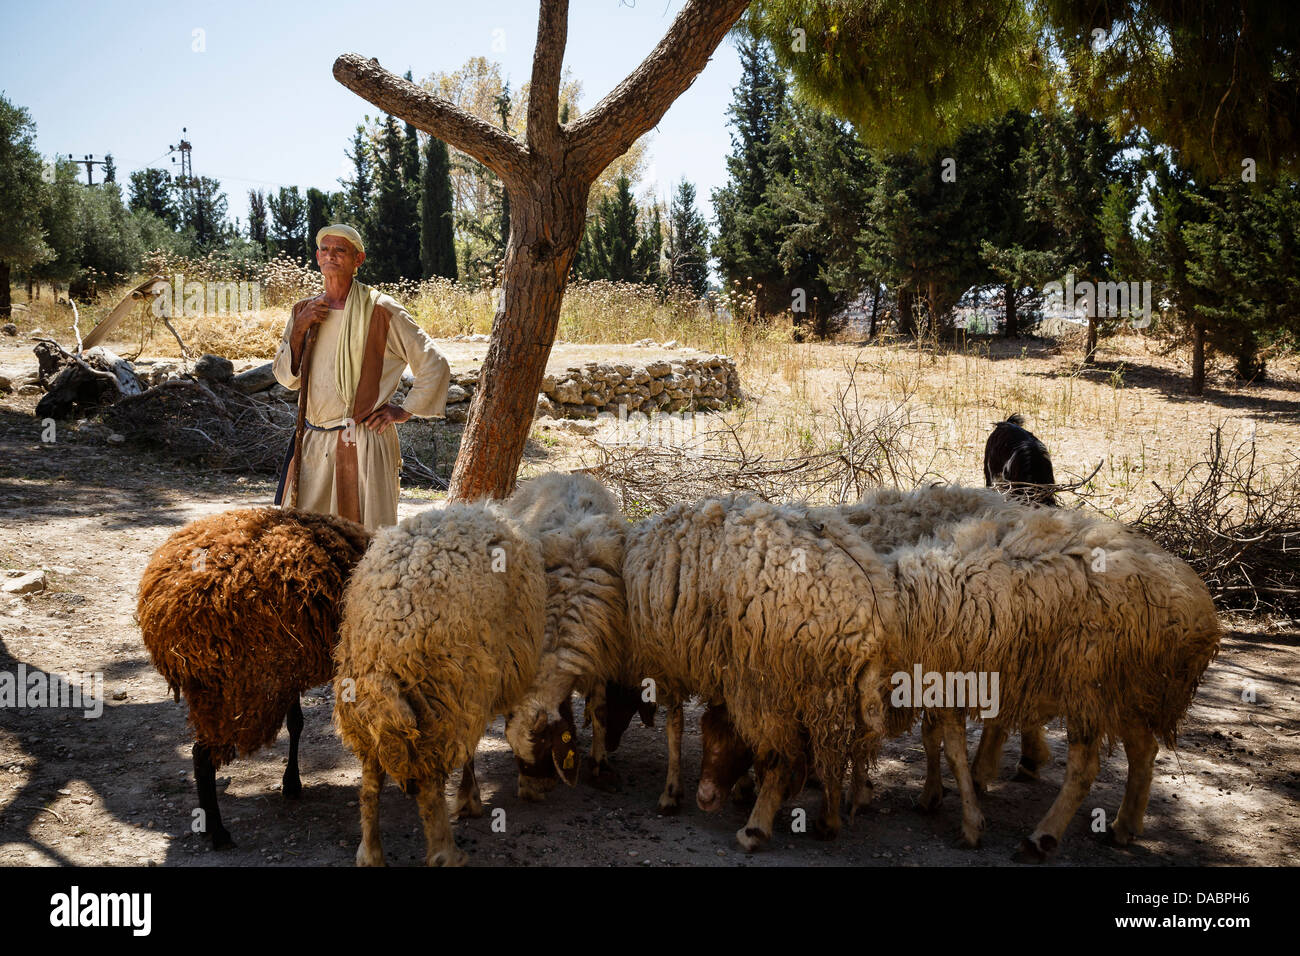 Nazareth Village, recreating Nazareth in the time of Jesus, Nazareth, Lower Galilee region, Israel, Middle East - Stock Image